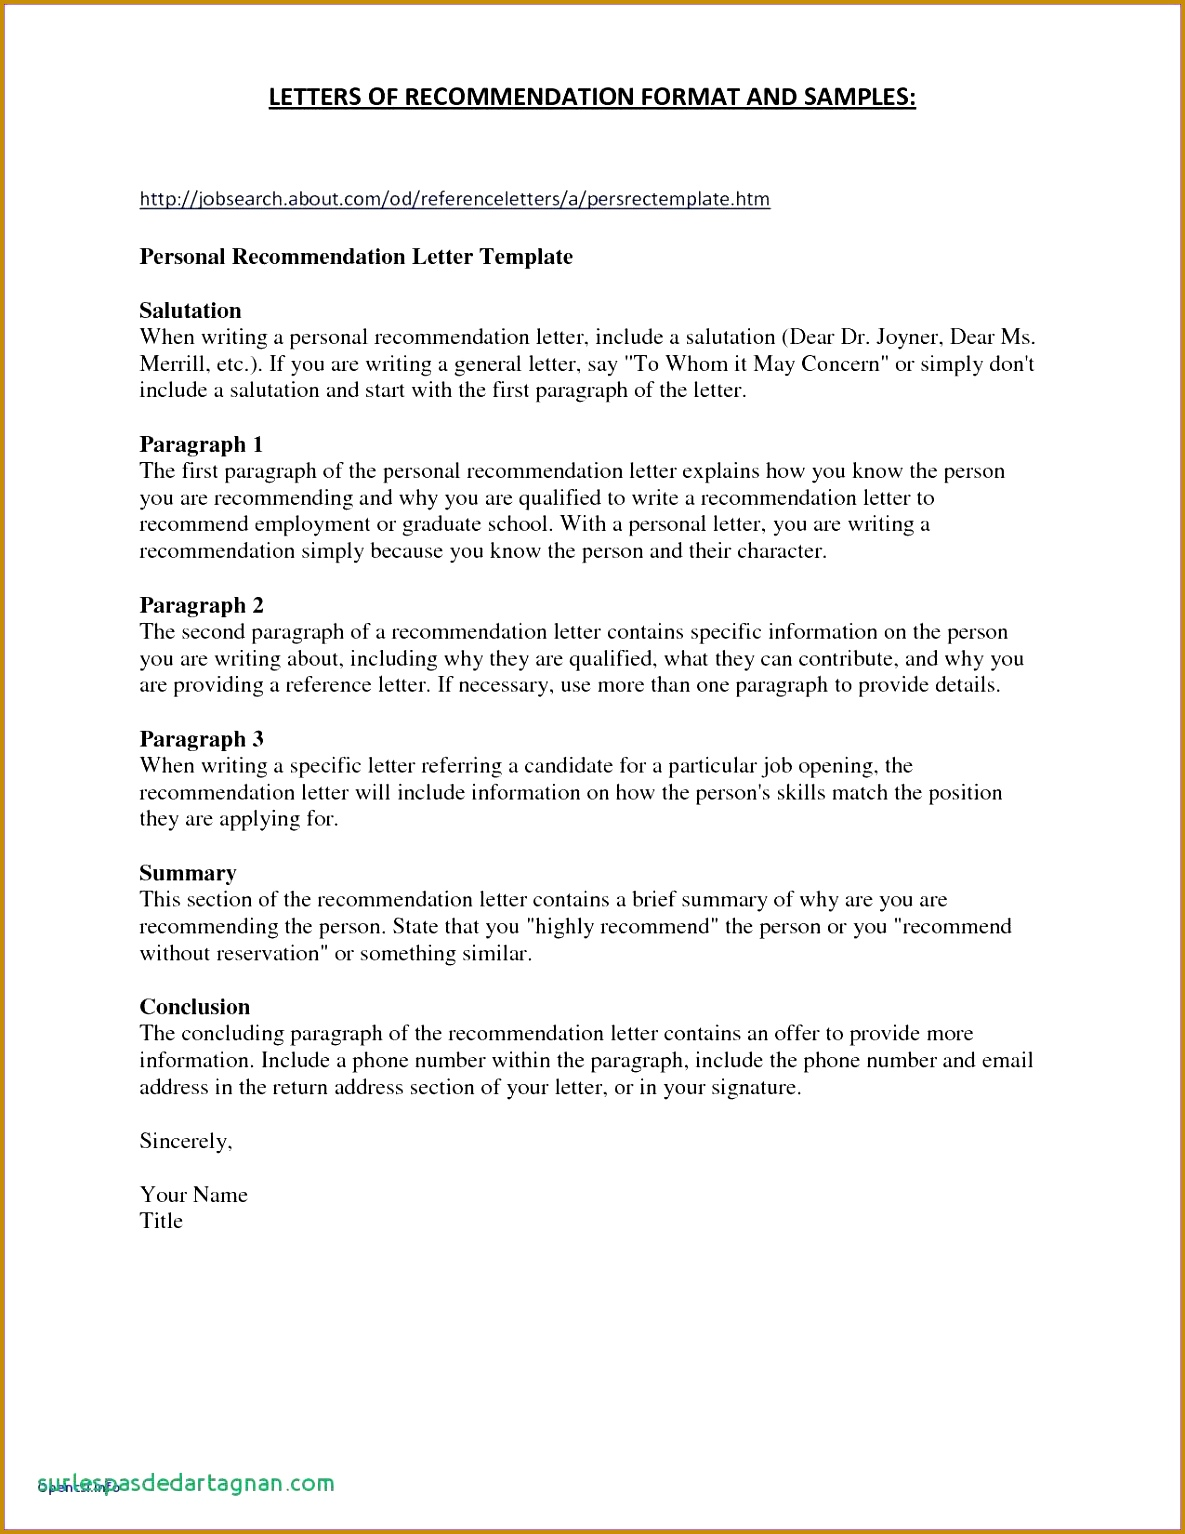 20 Personal Re mendation Letter Template 15341185